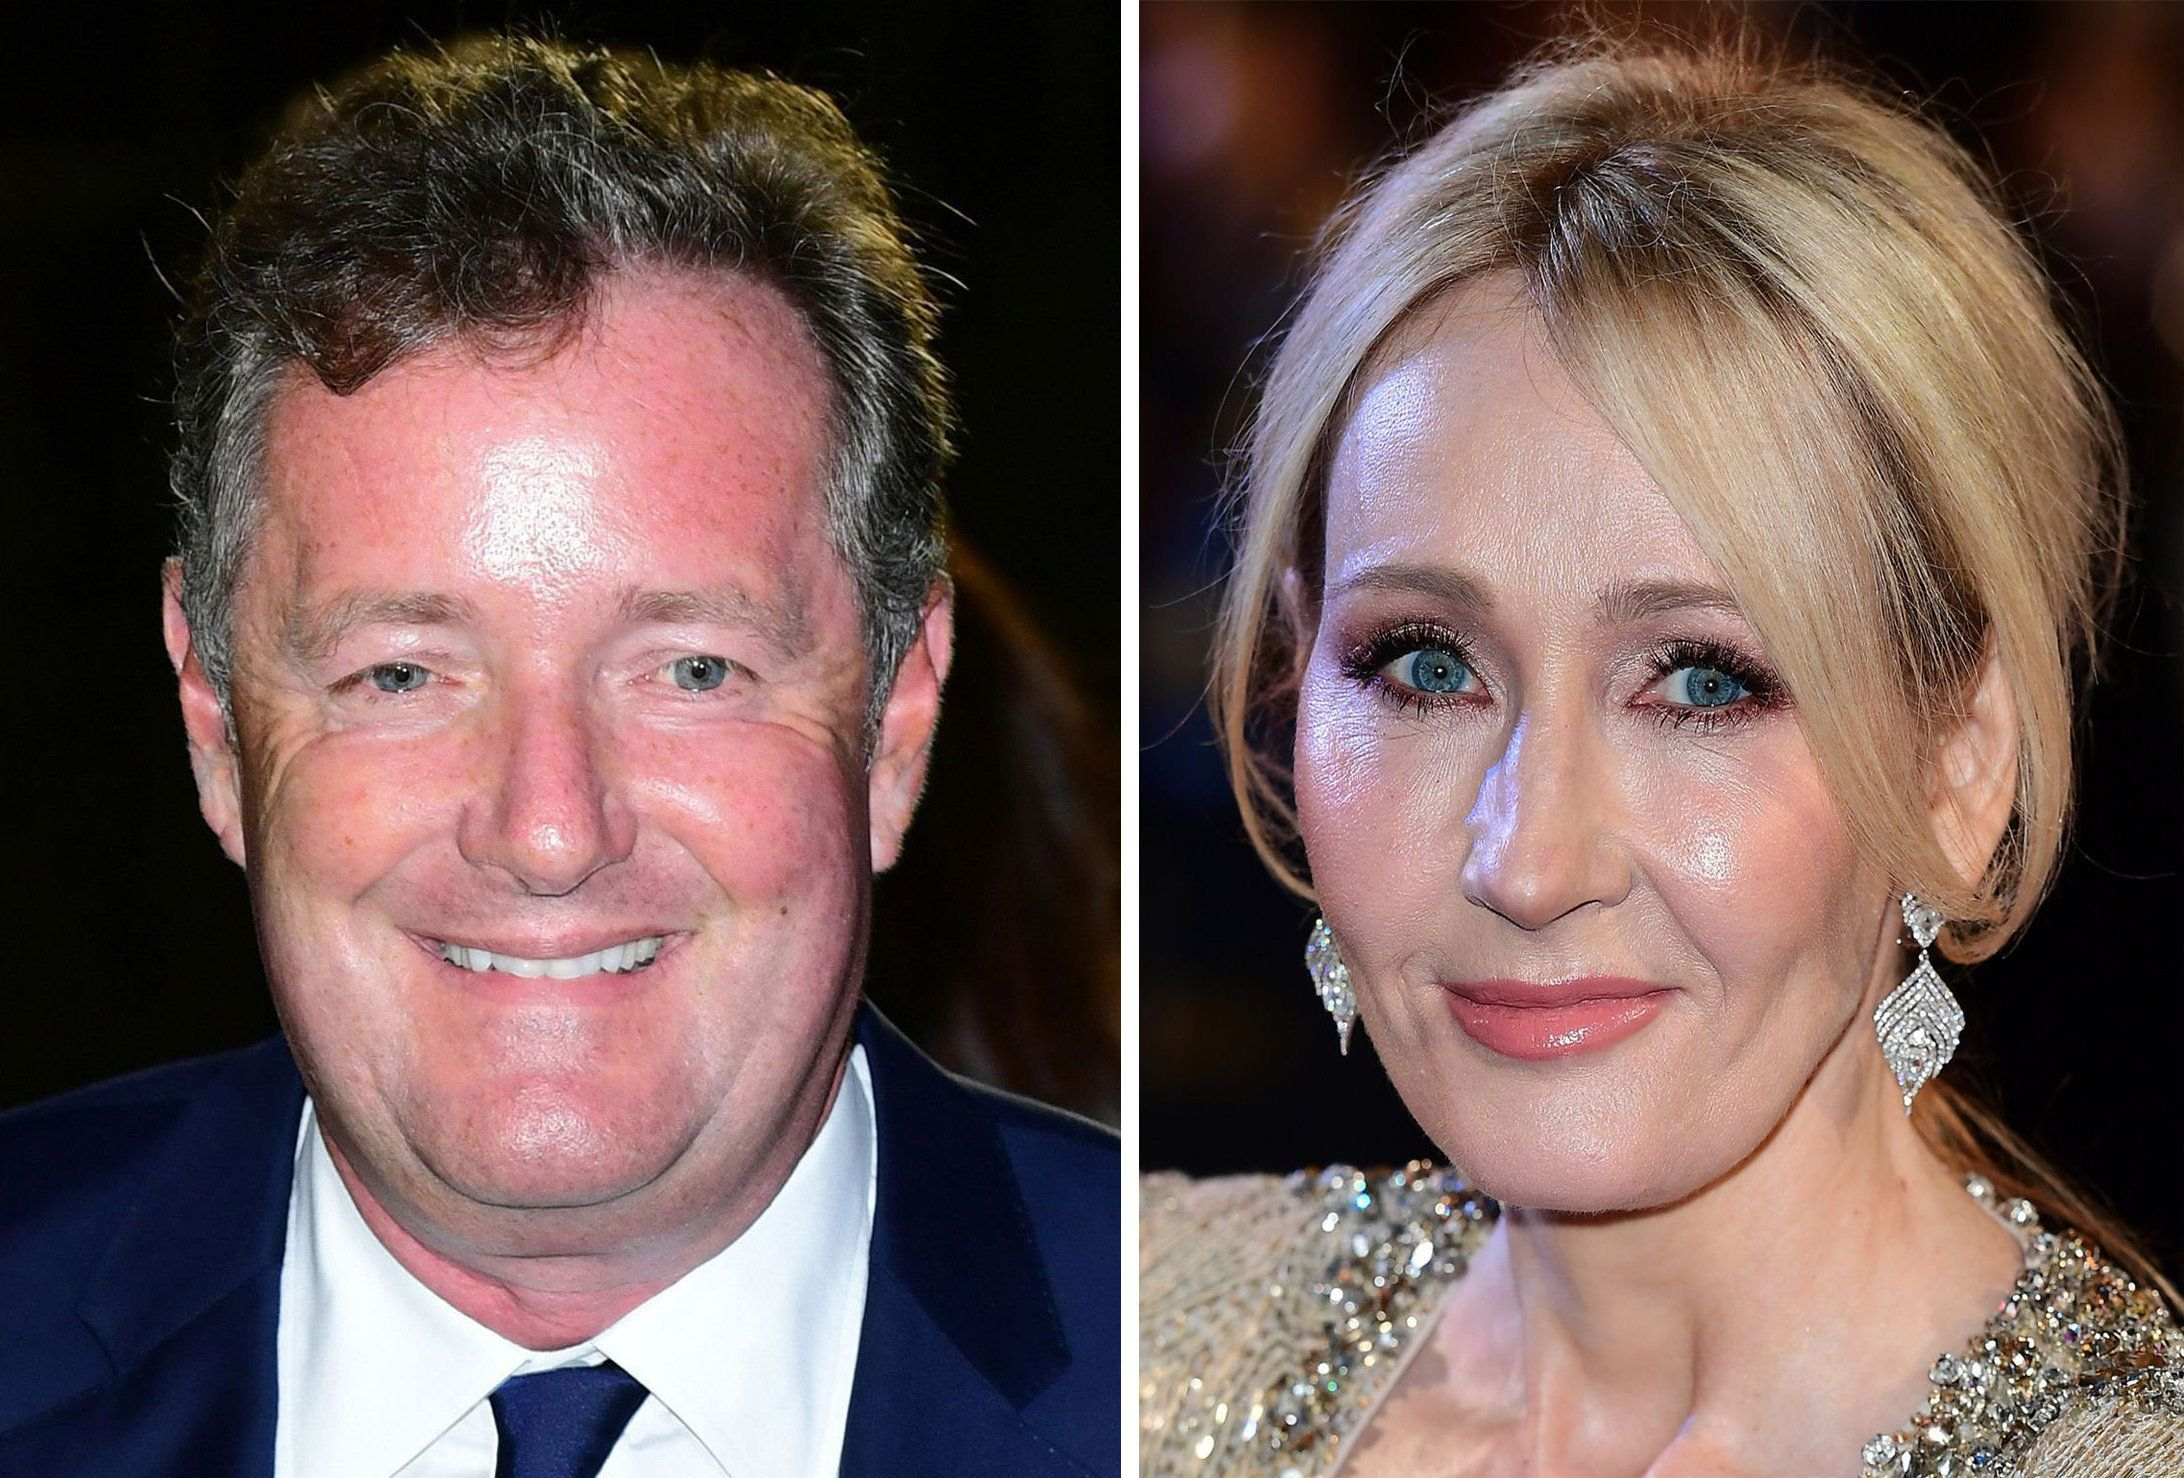 Piers Morgan and J.K.